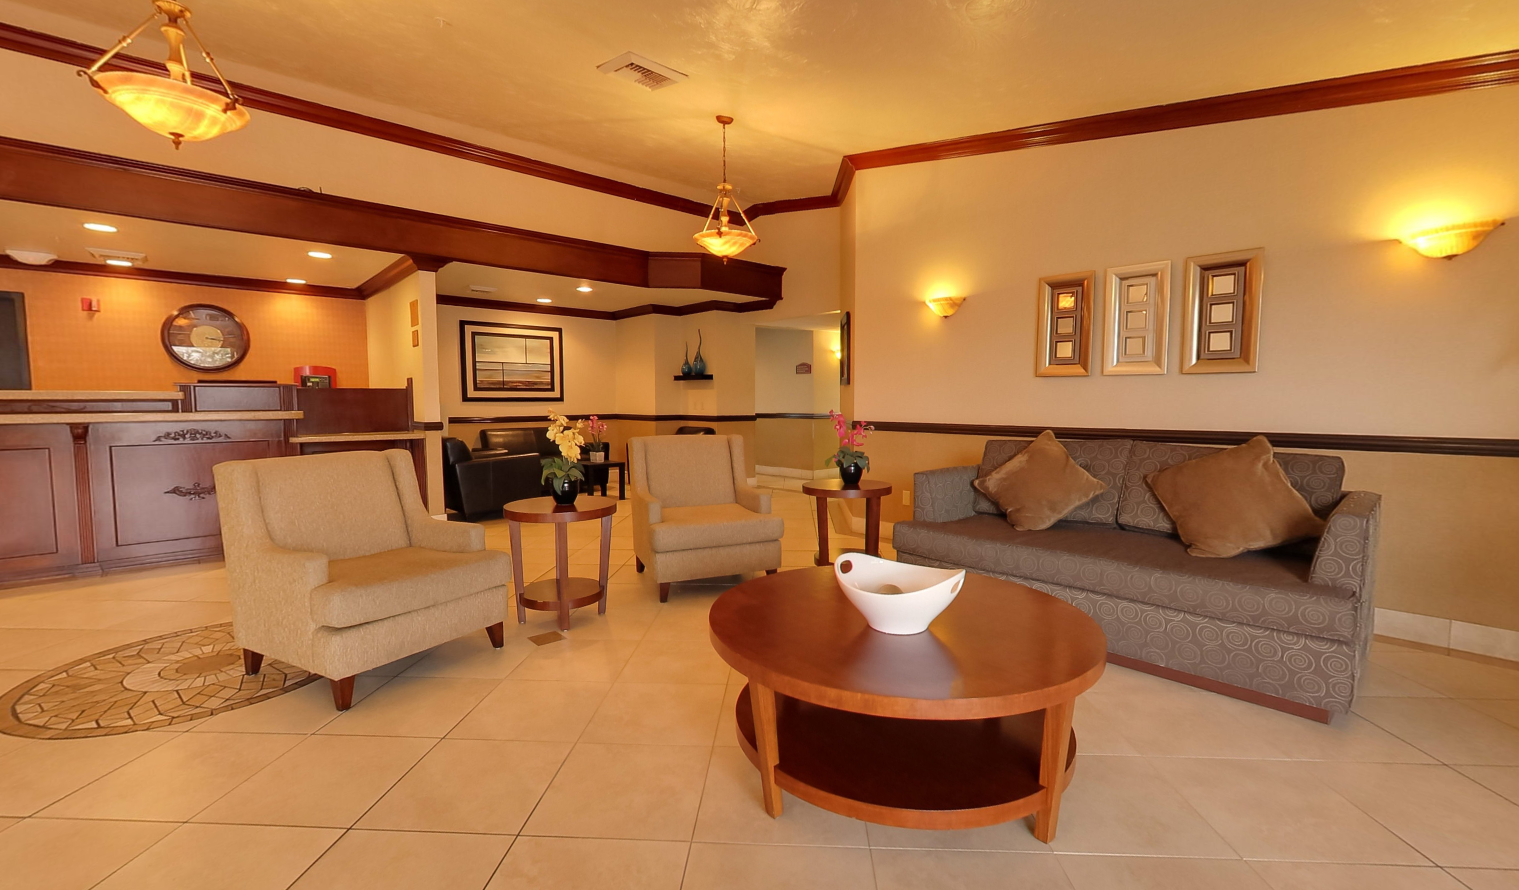 Elegant lobby of Best Western Plus Hotel Las Vegas, with a cozy waiting area facing the reception desk